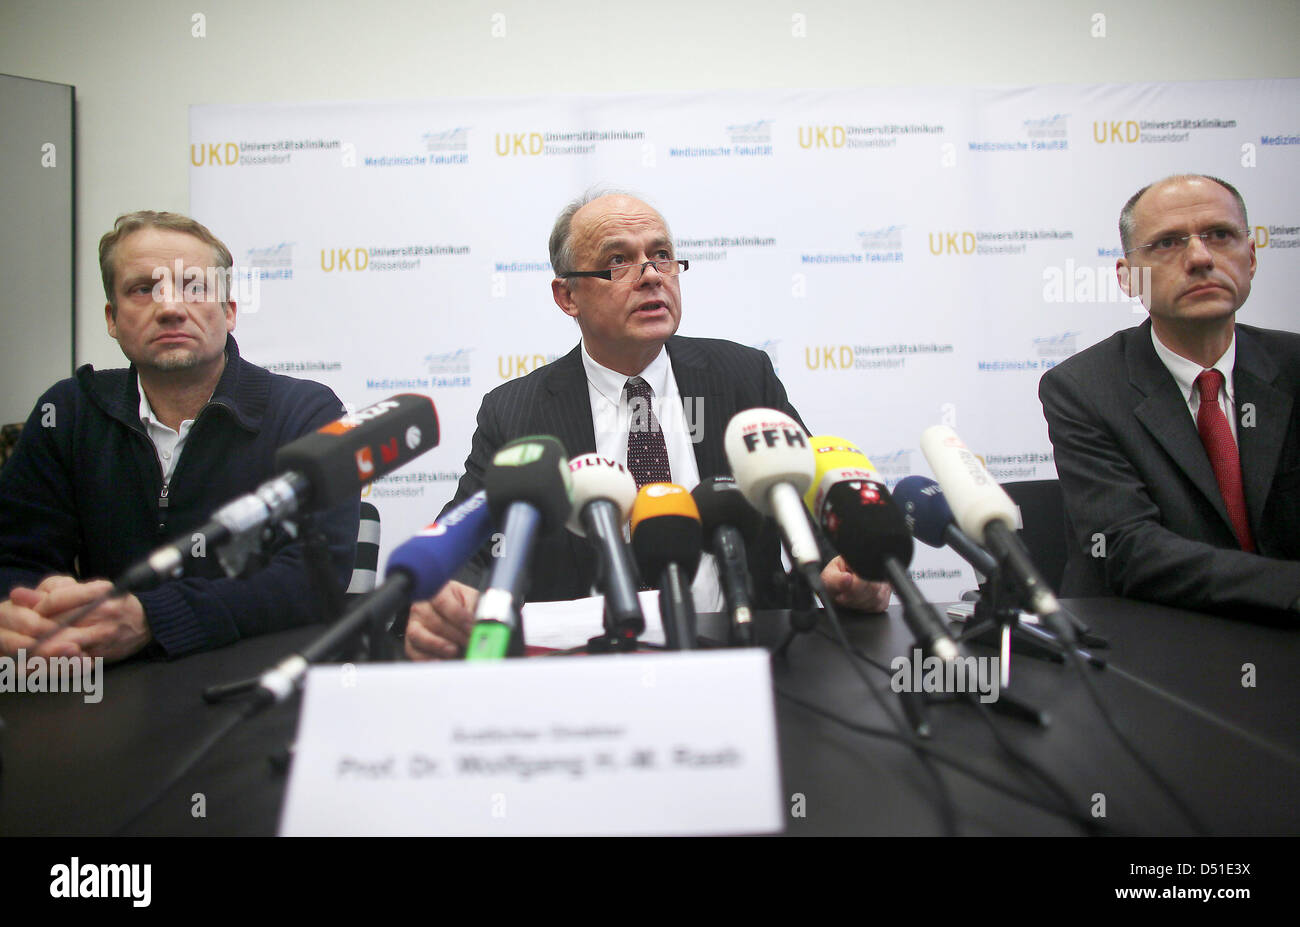 The medical director of the University Hospital, Wolfgang Raab (m) and the responsible doctors Richard Bostelmann - Stock Image